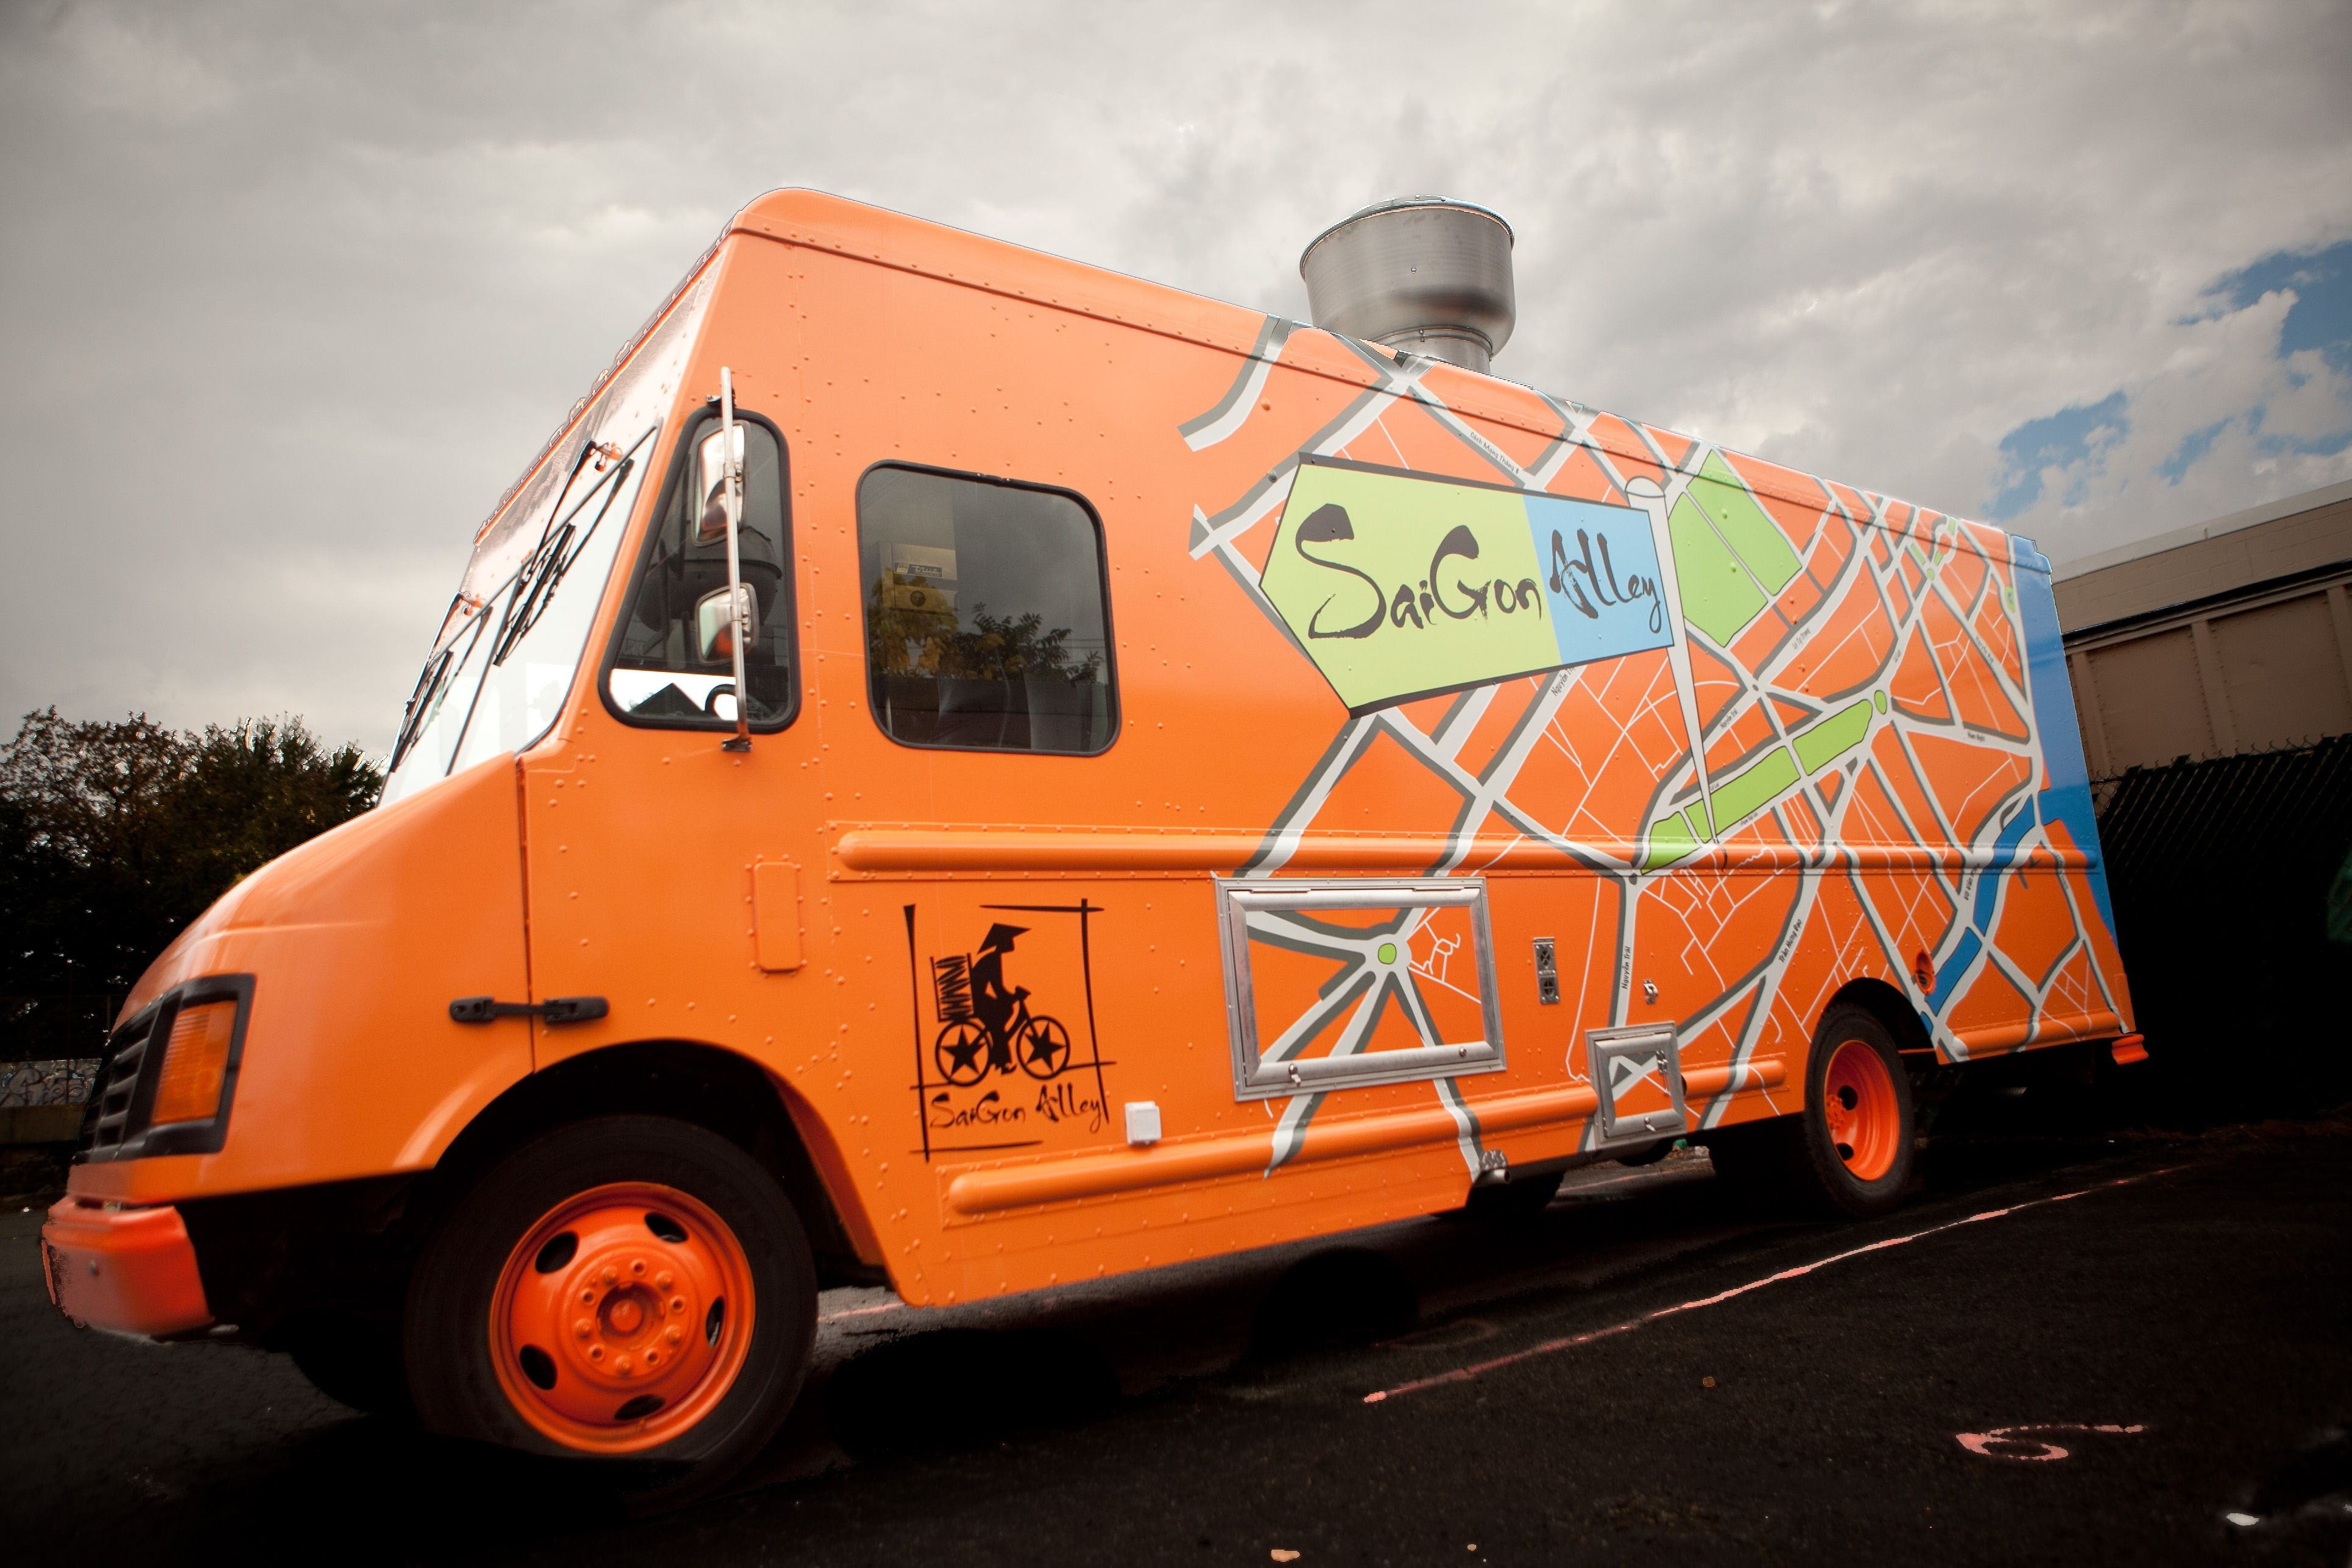 The brand new saigon alley food truck working out of the